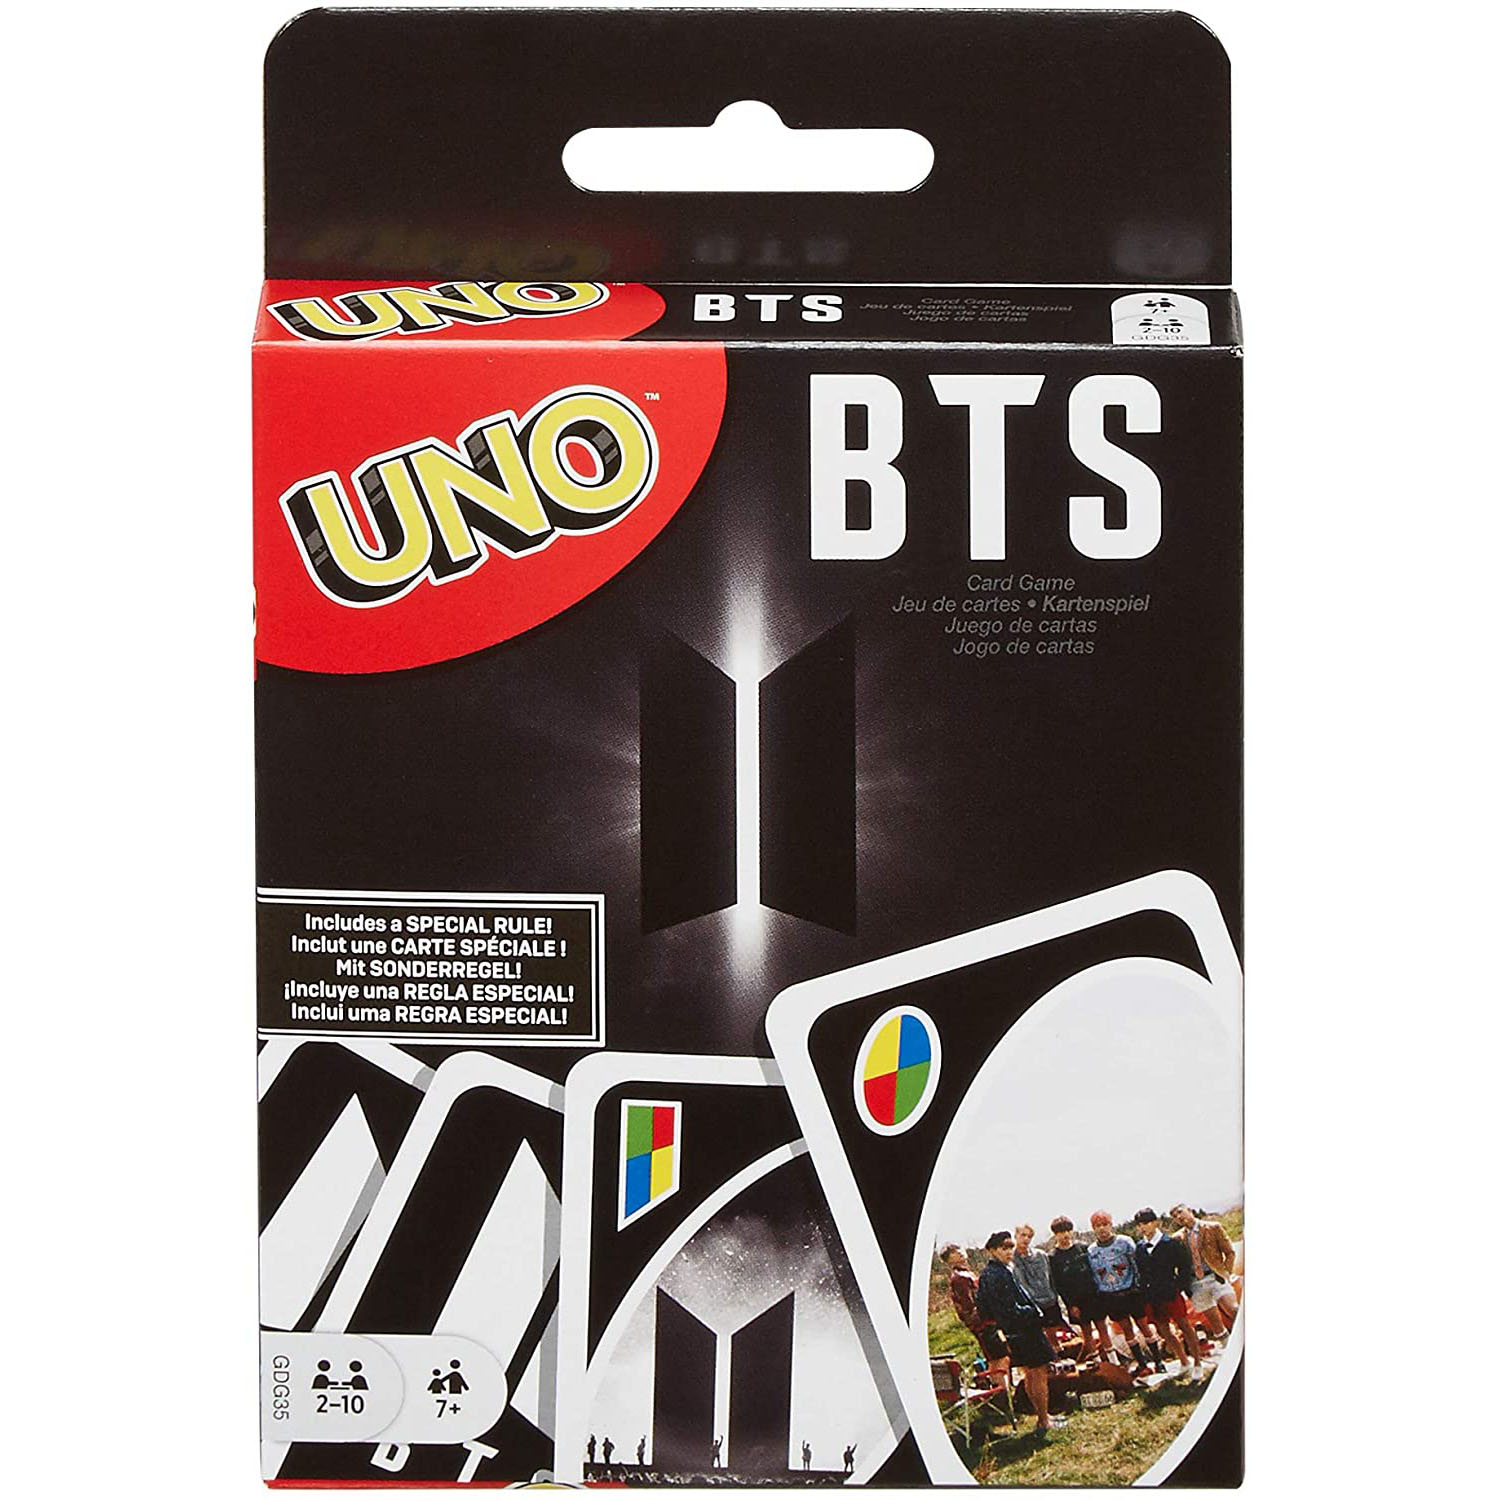 Topsale Puzzle Games Mattel Genuine UNO BTS Family Funny Entertainment Board Game Fun Poker Playing Cards Gift Box